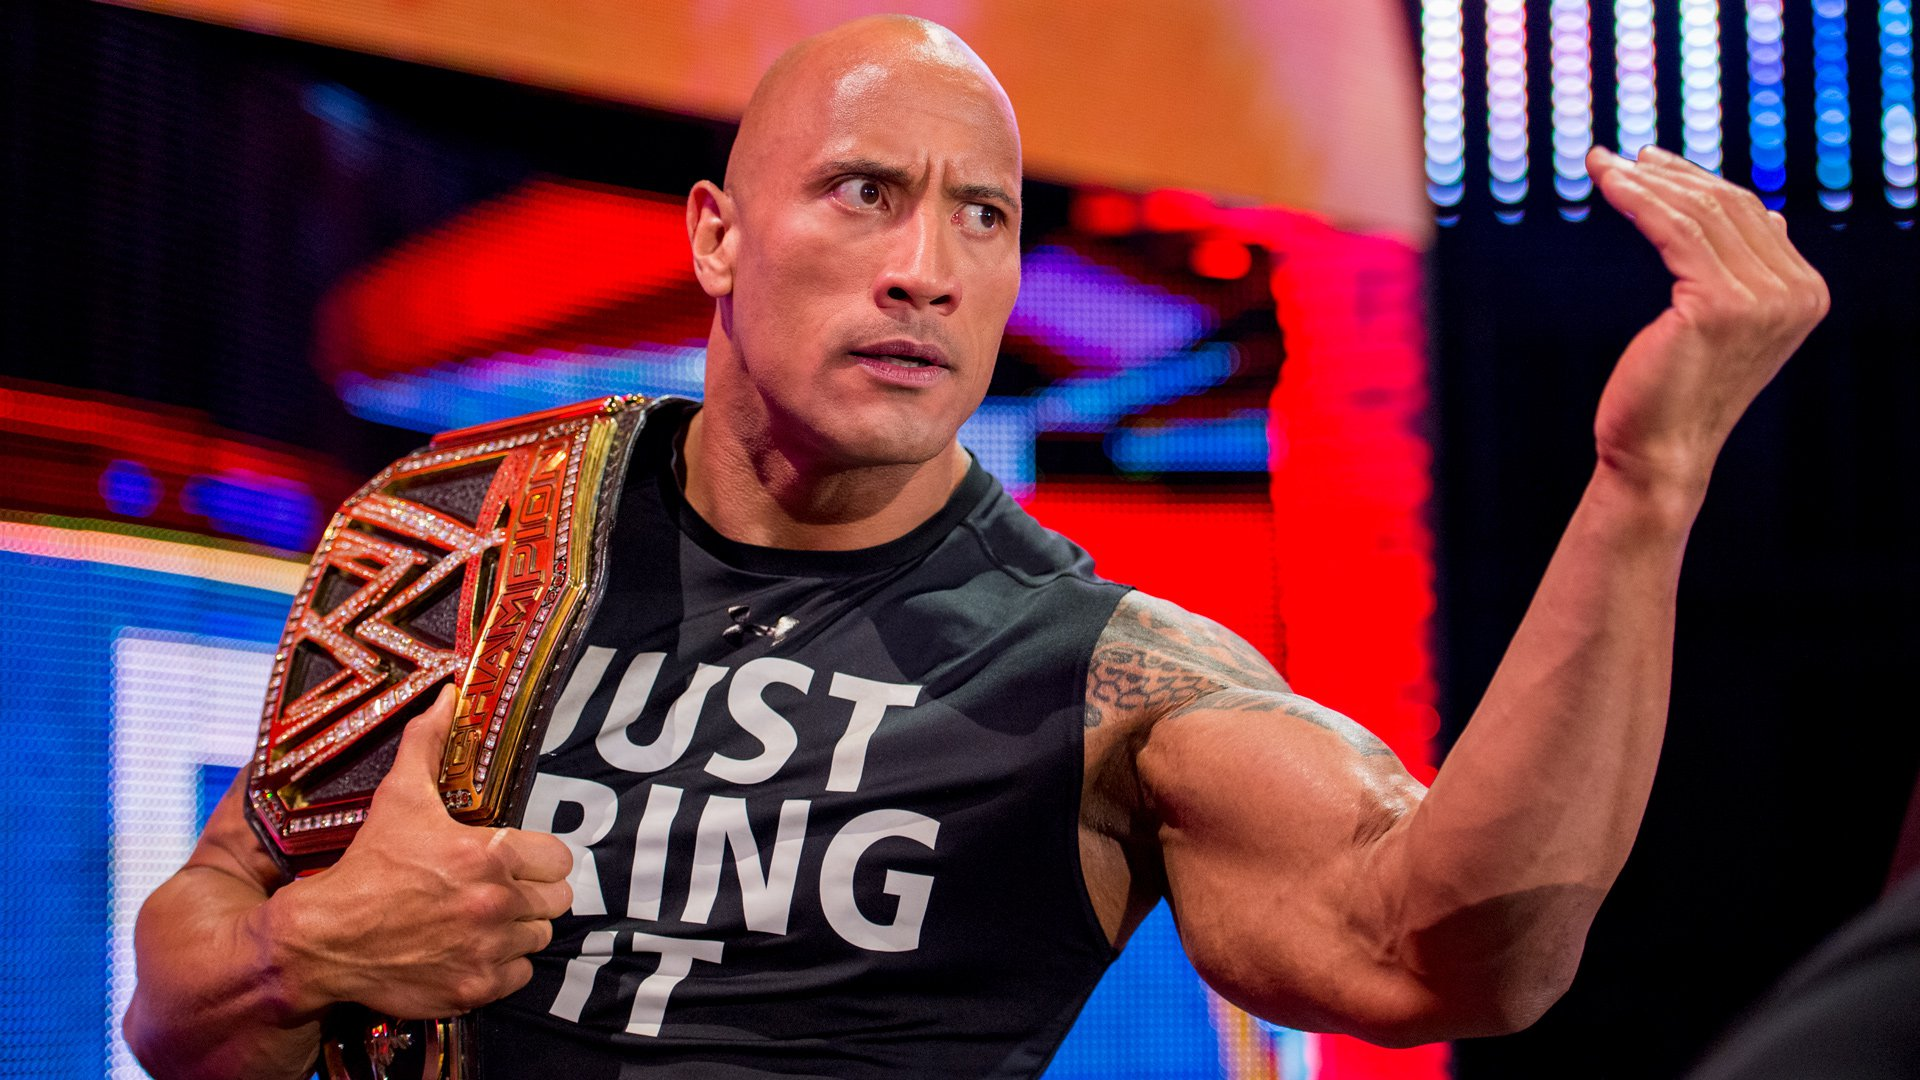 WWE Veteran The Rock Remains Highest Paid Hollywood Actor 2